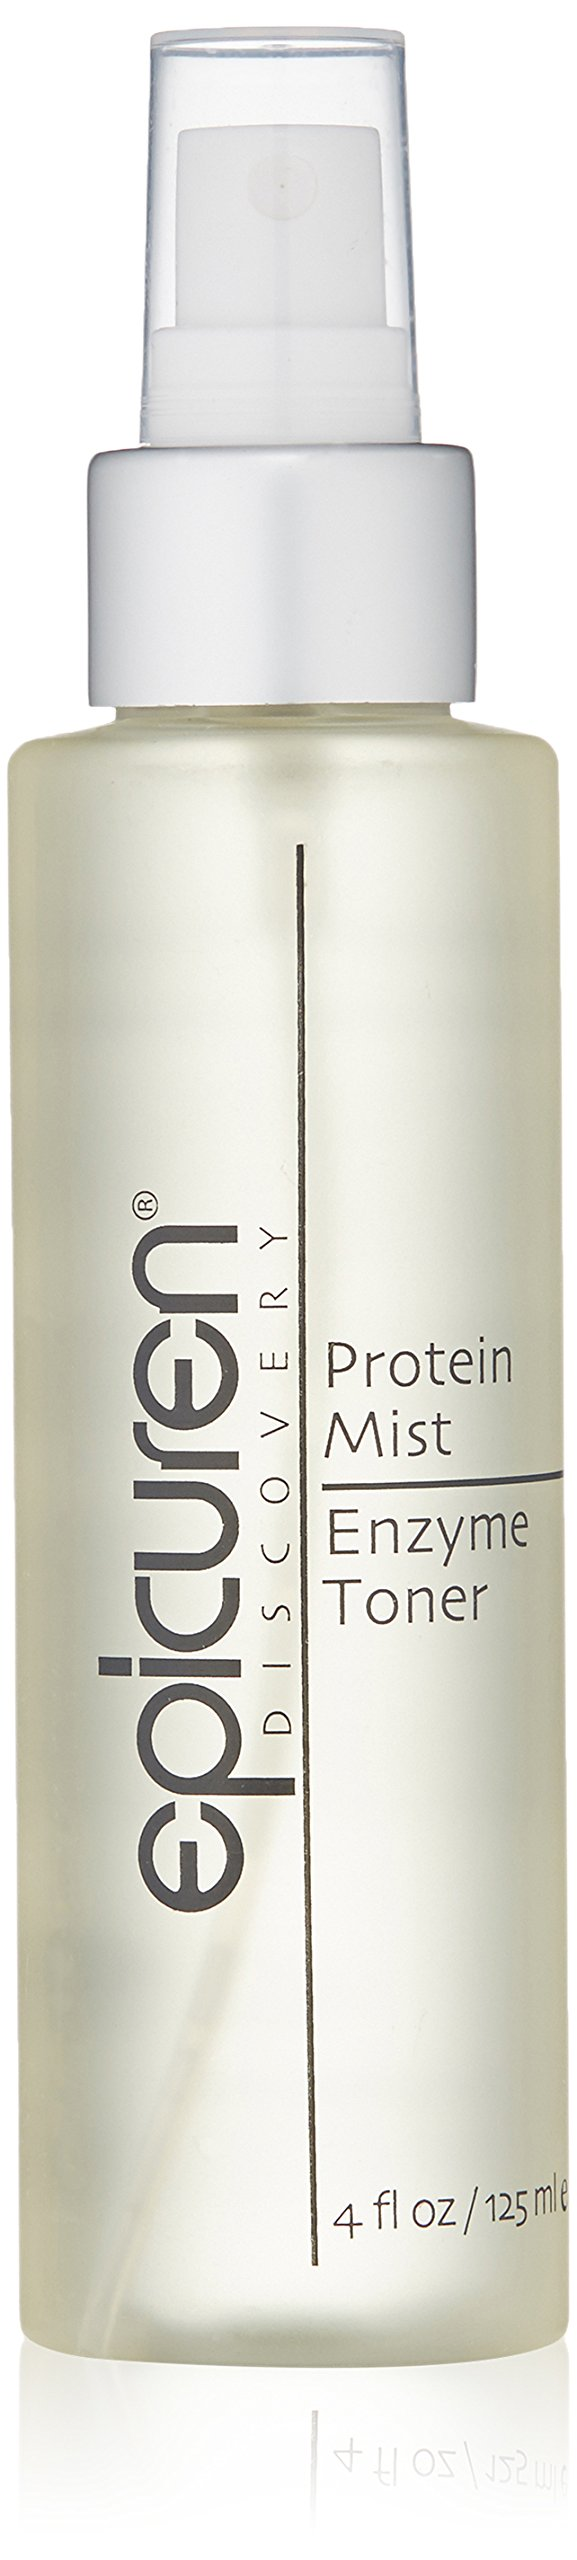 Epicuren Discovery Protein Mist Enzyme Toner, 4 Fl oz by epicuren DISCOVERY